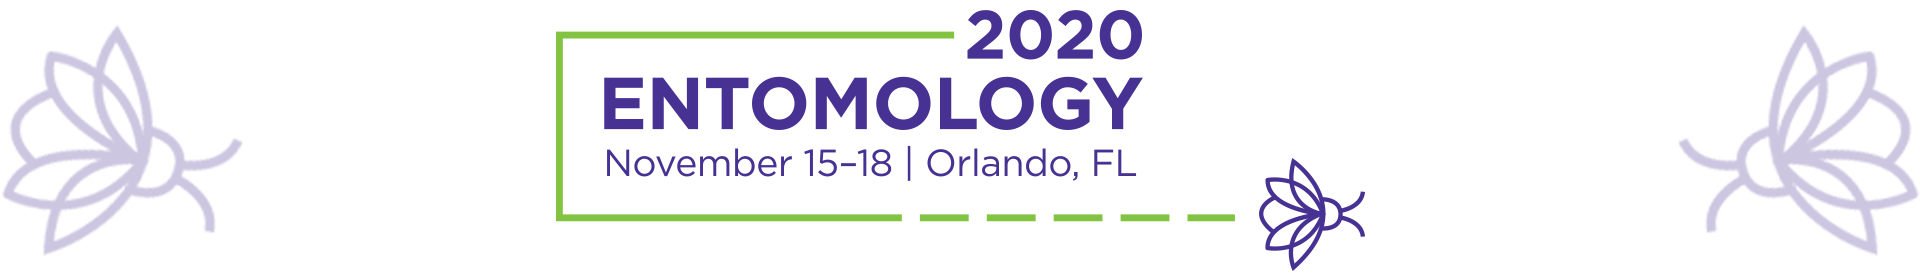 Entomology 2020 - Paper and Poster Submissions Event Banner